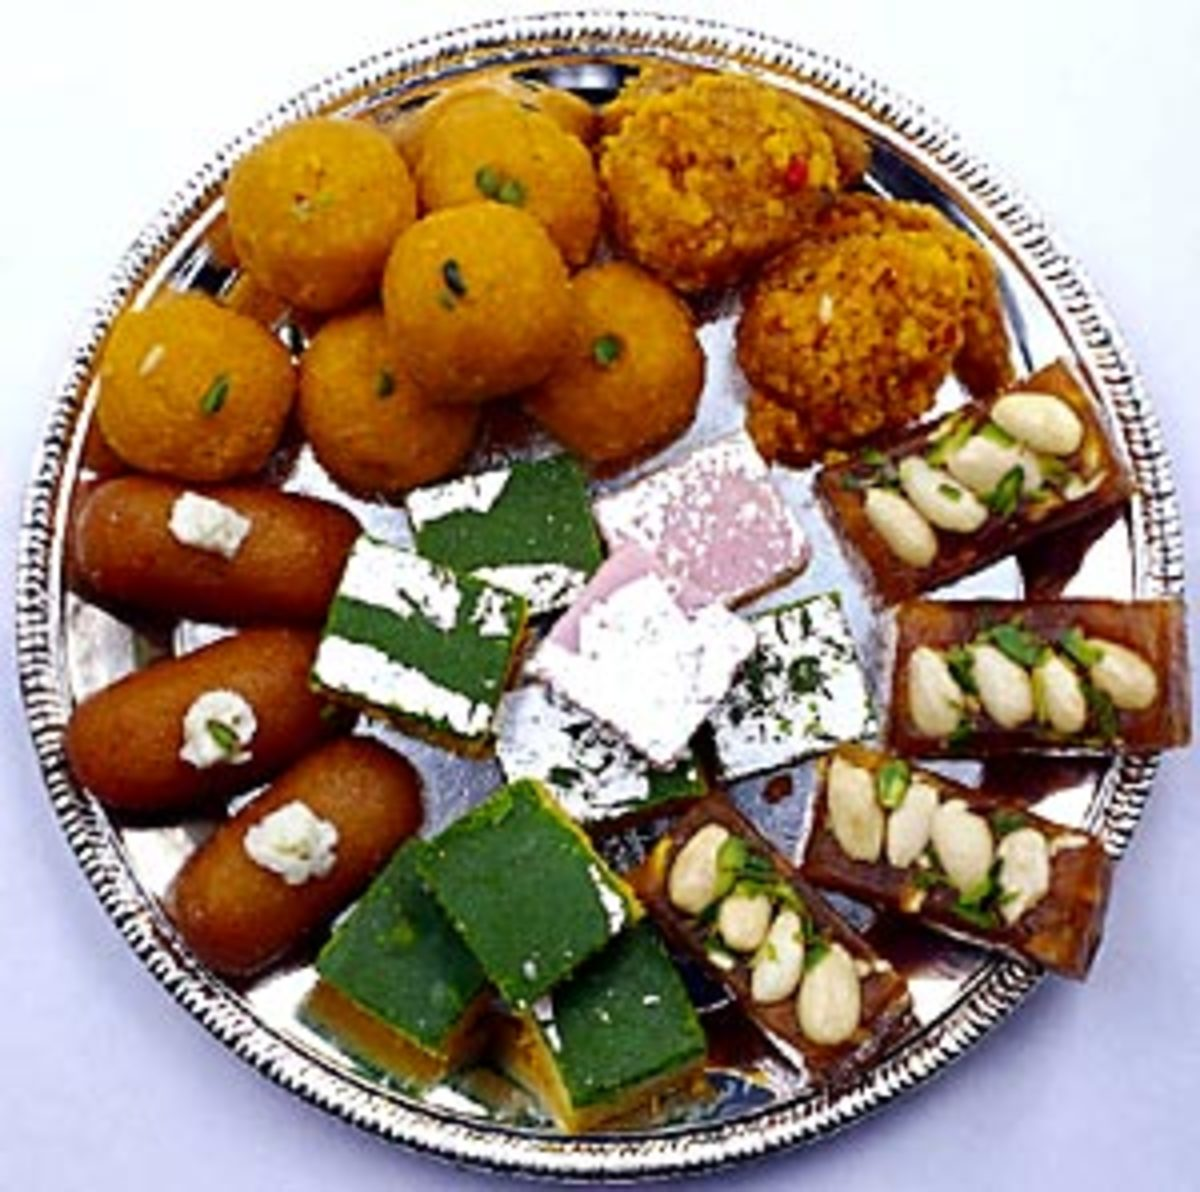 A variety of Indian sweets